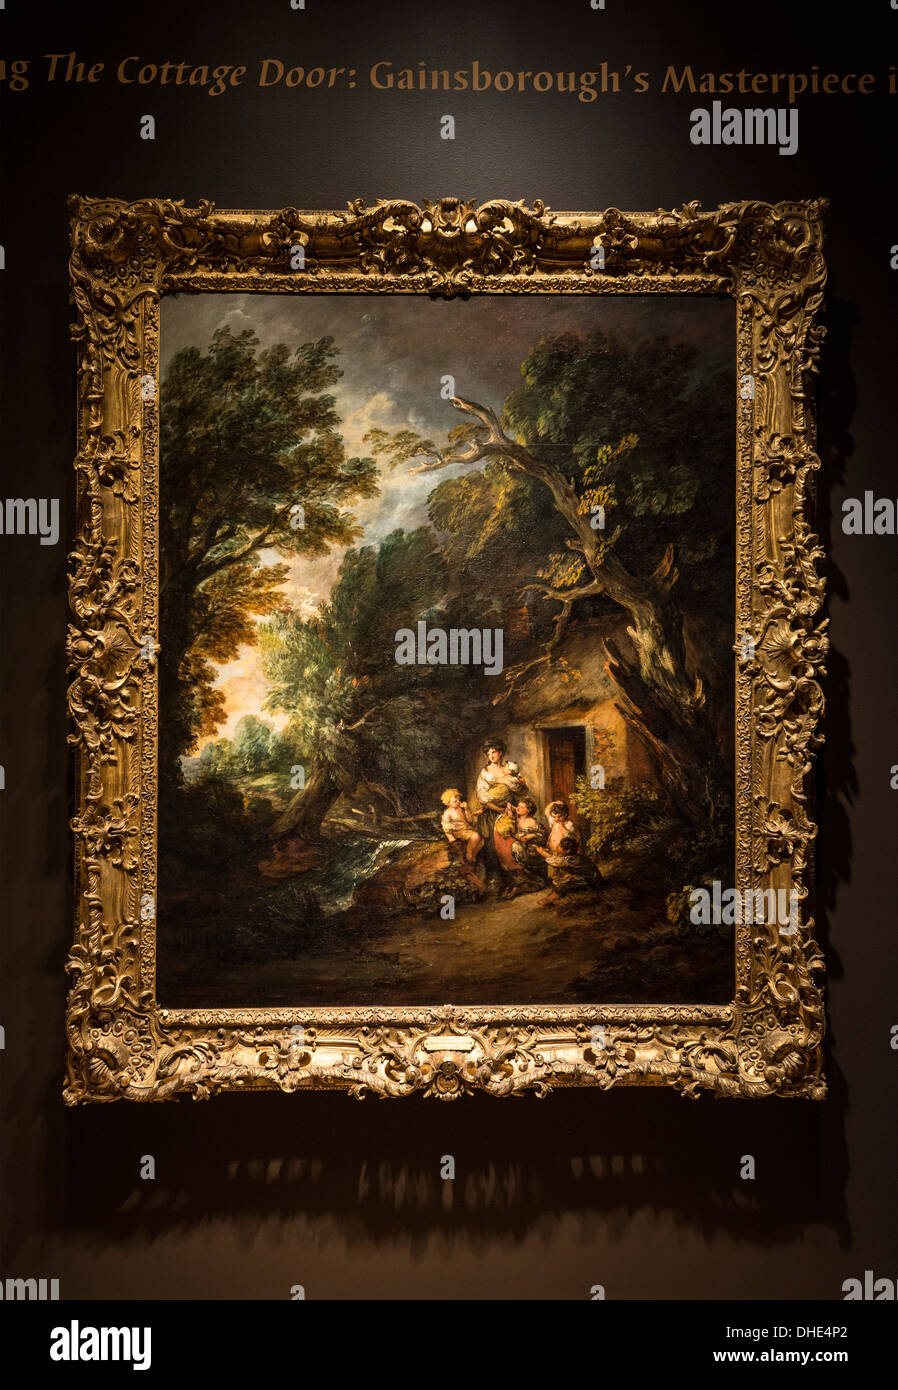 The Cottage Door by Thomas Gainsborough is among his most famous paintings. & The Cottage Door by Thomas Gainsborough is among his most famous ...